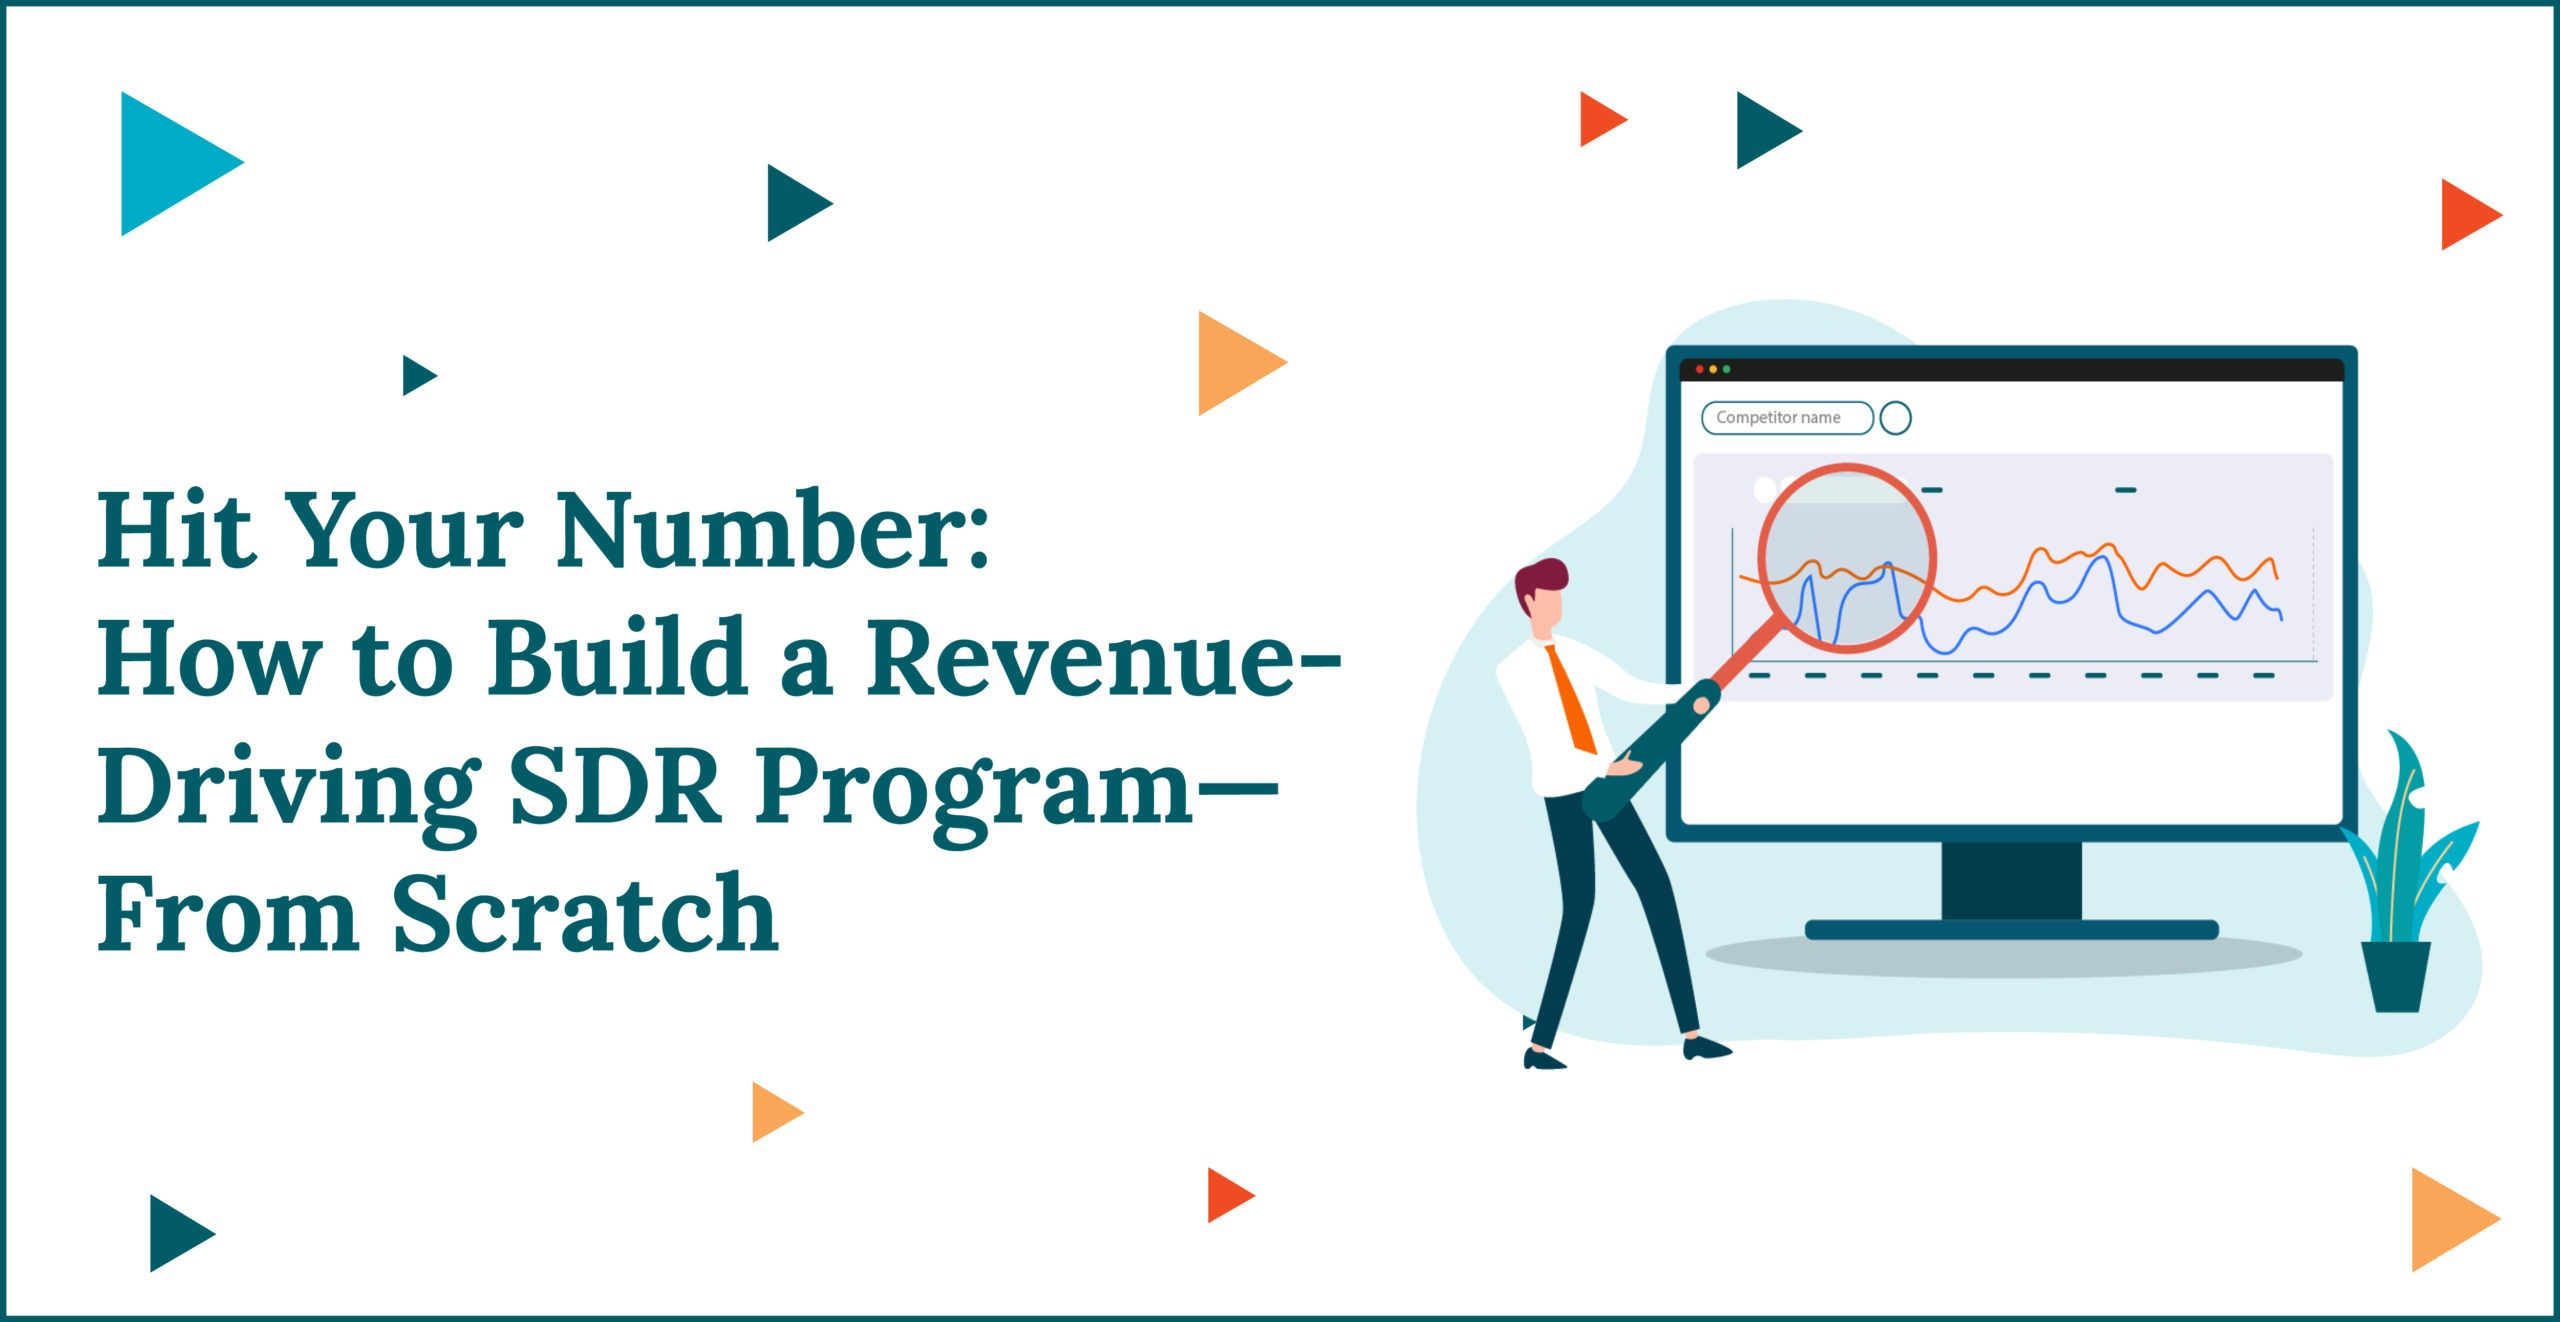 Hit Your Number: How to Build a Revenue-Driving SDR Program—From Scratch